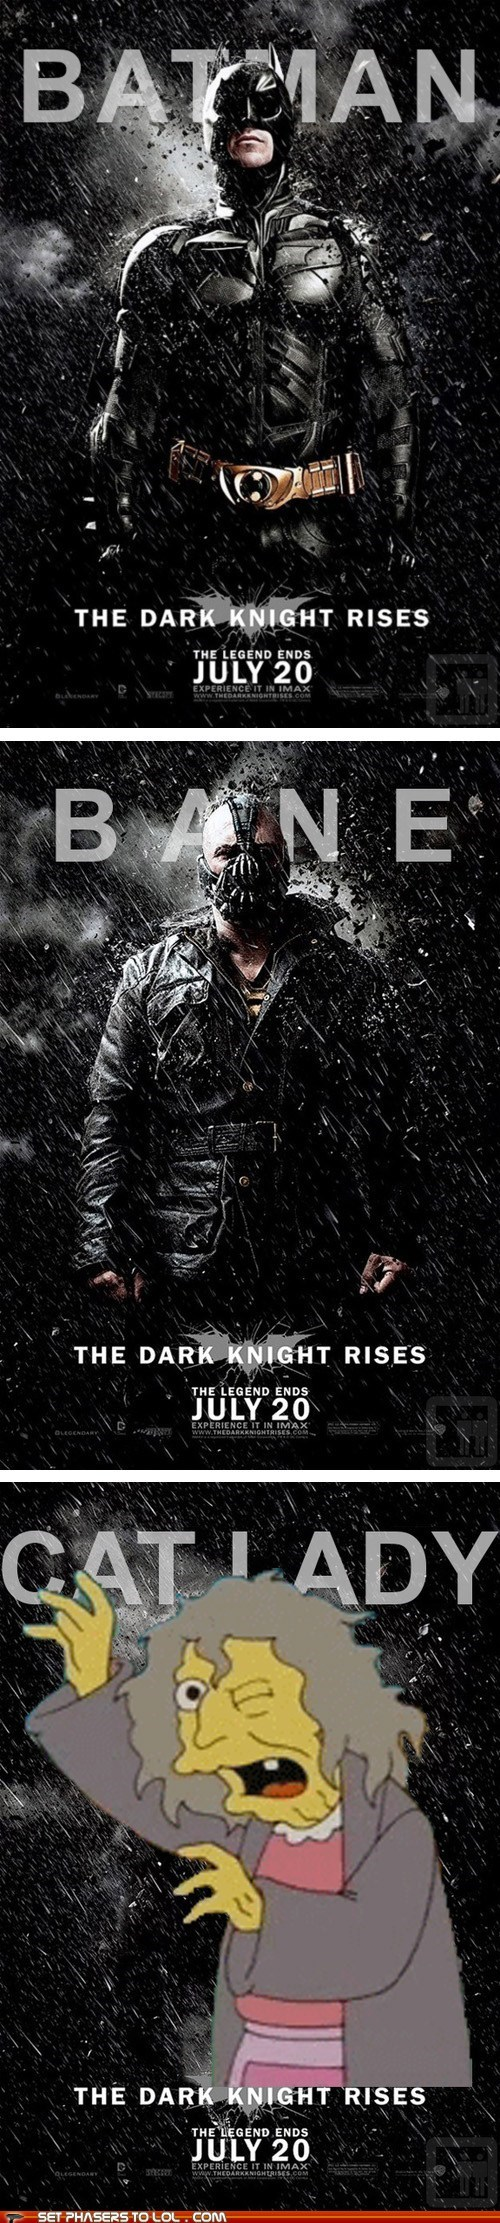 bane batman cat lady christian bale the dark knight rises the simpsons tom hardy - 6413726464